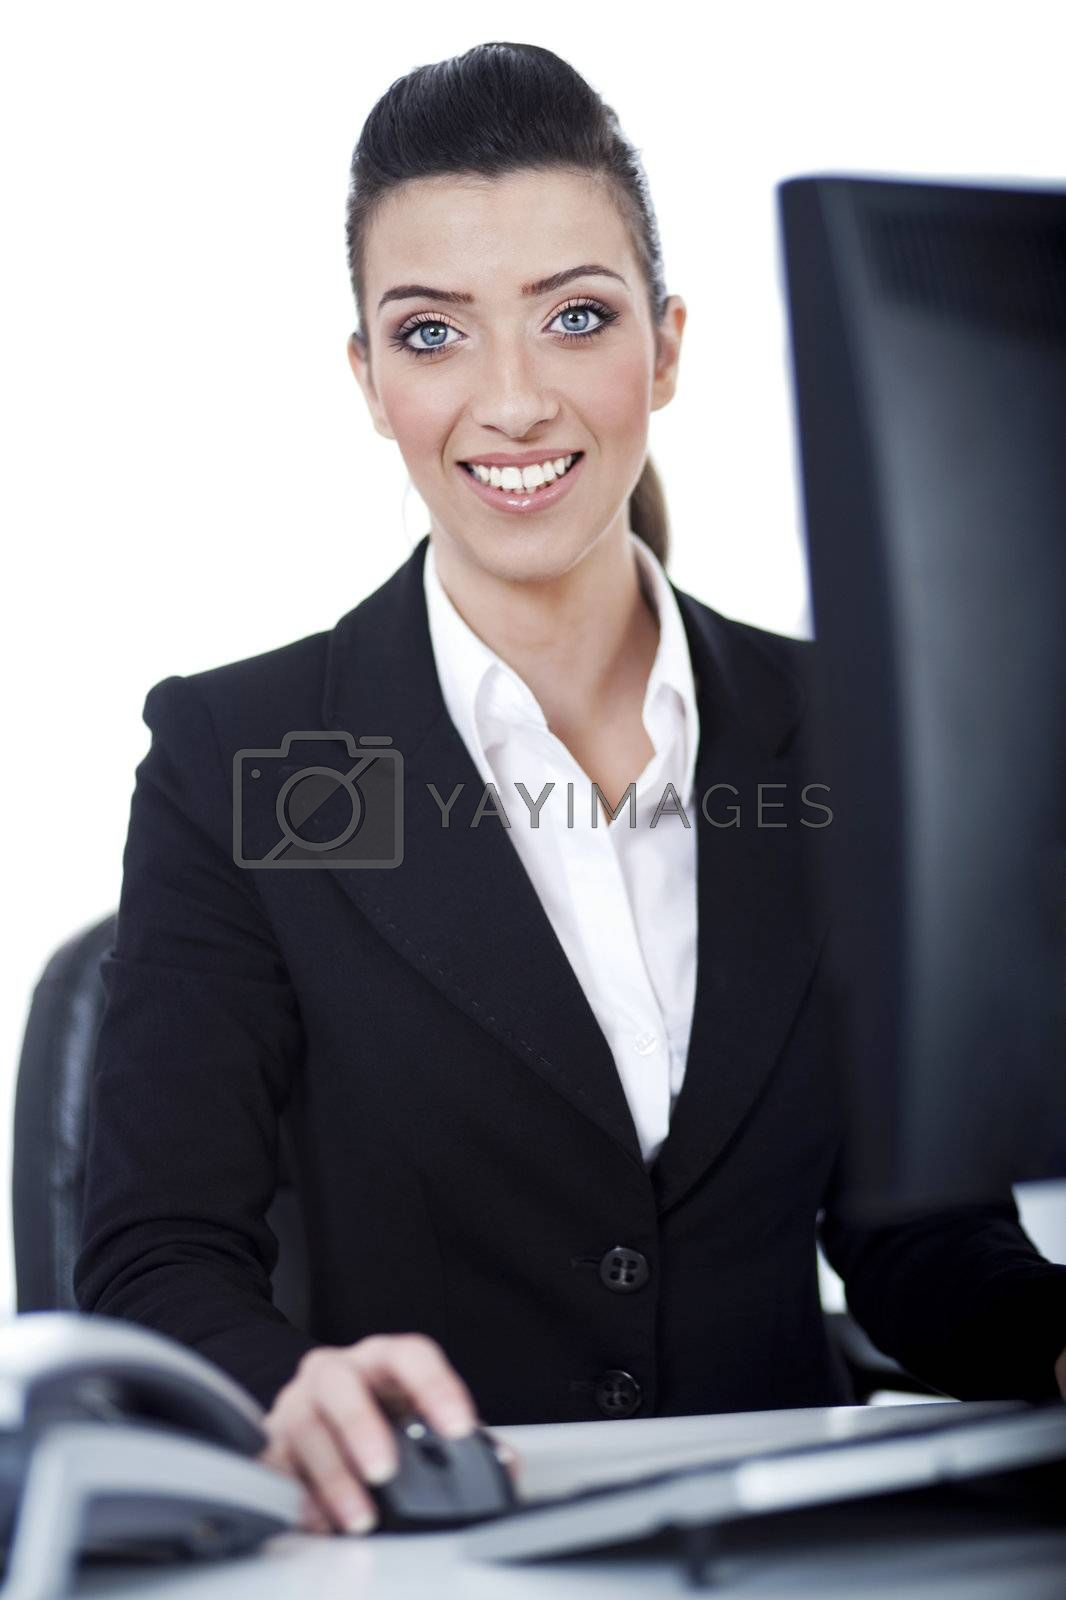 Royalty free image of Business woman working at office by get4net